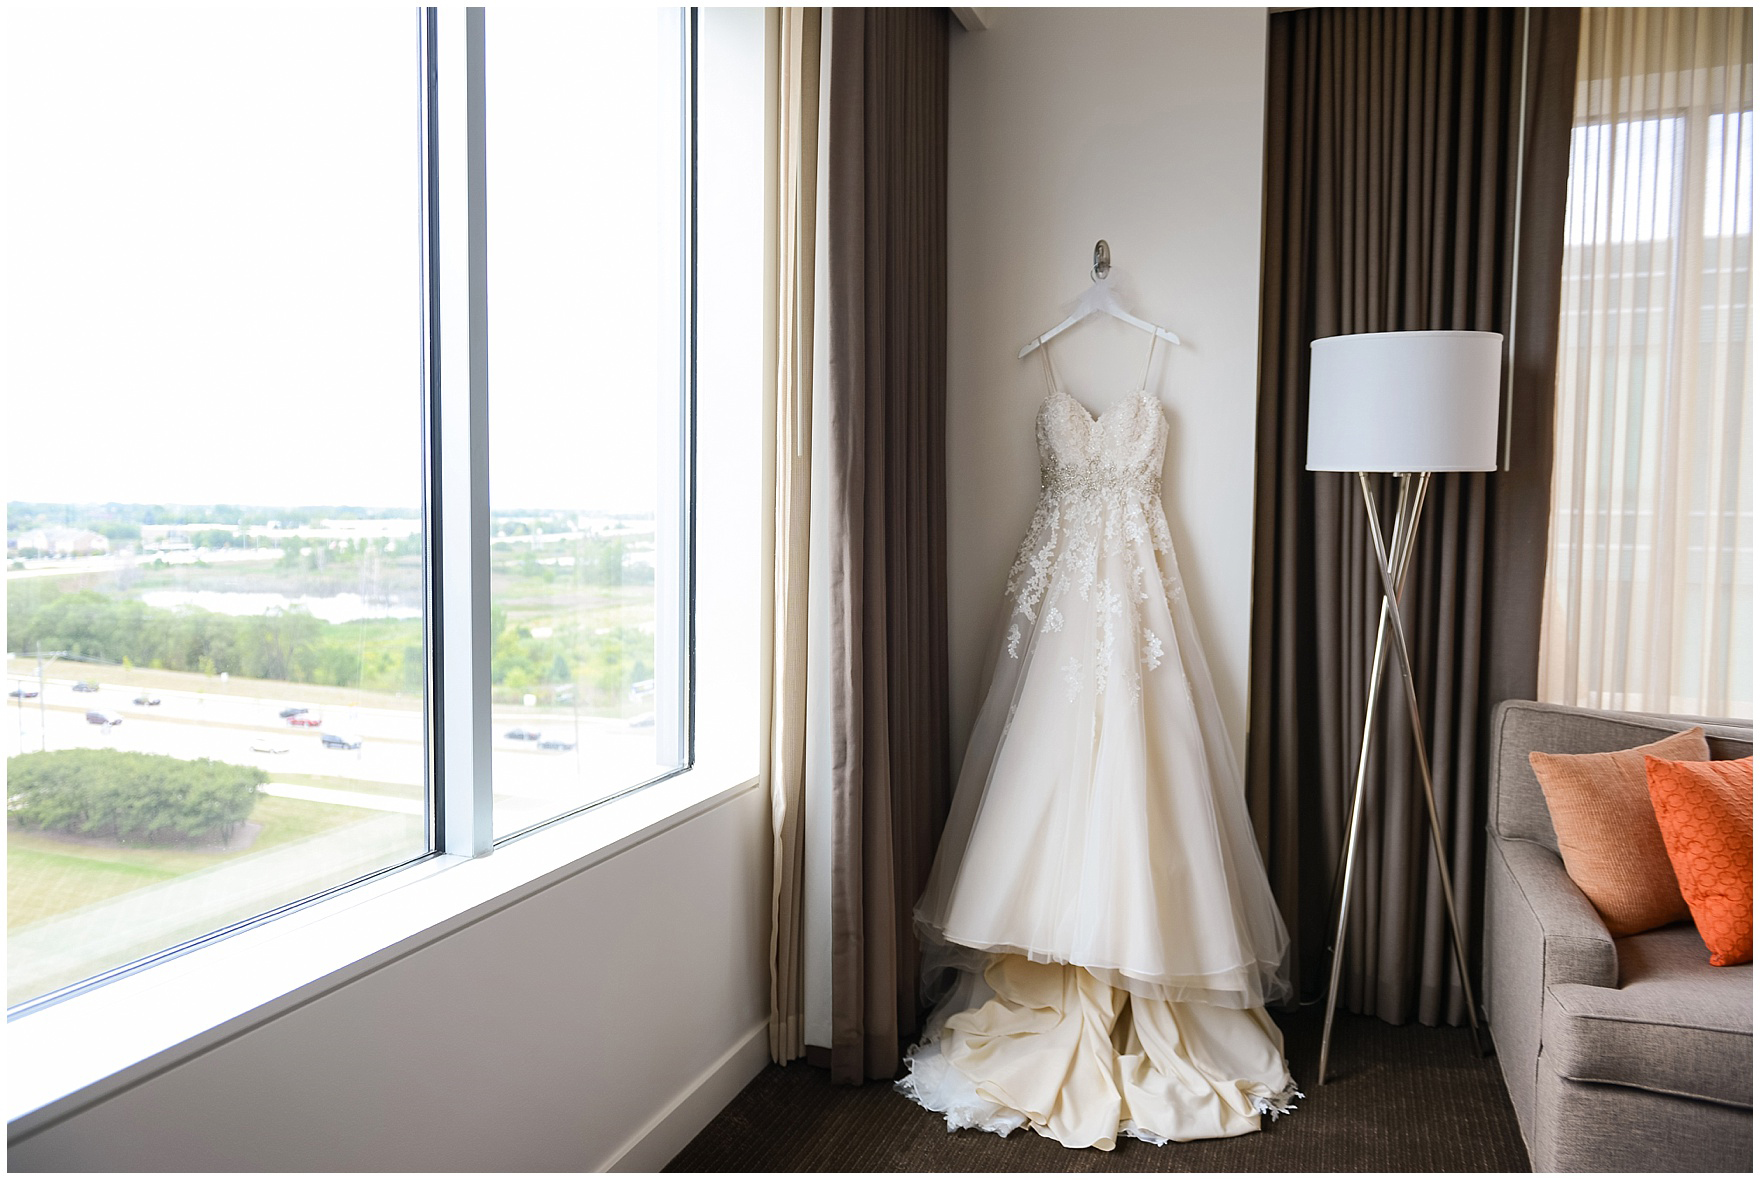 The bride's dress hangs in her hotel suite for a Hotel Arista Naperville wedding.